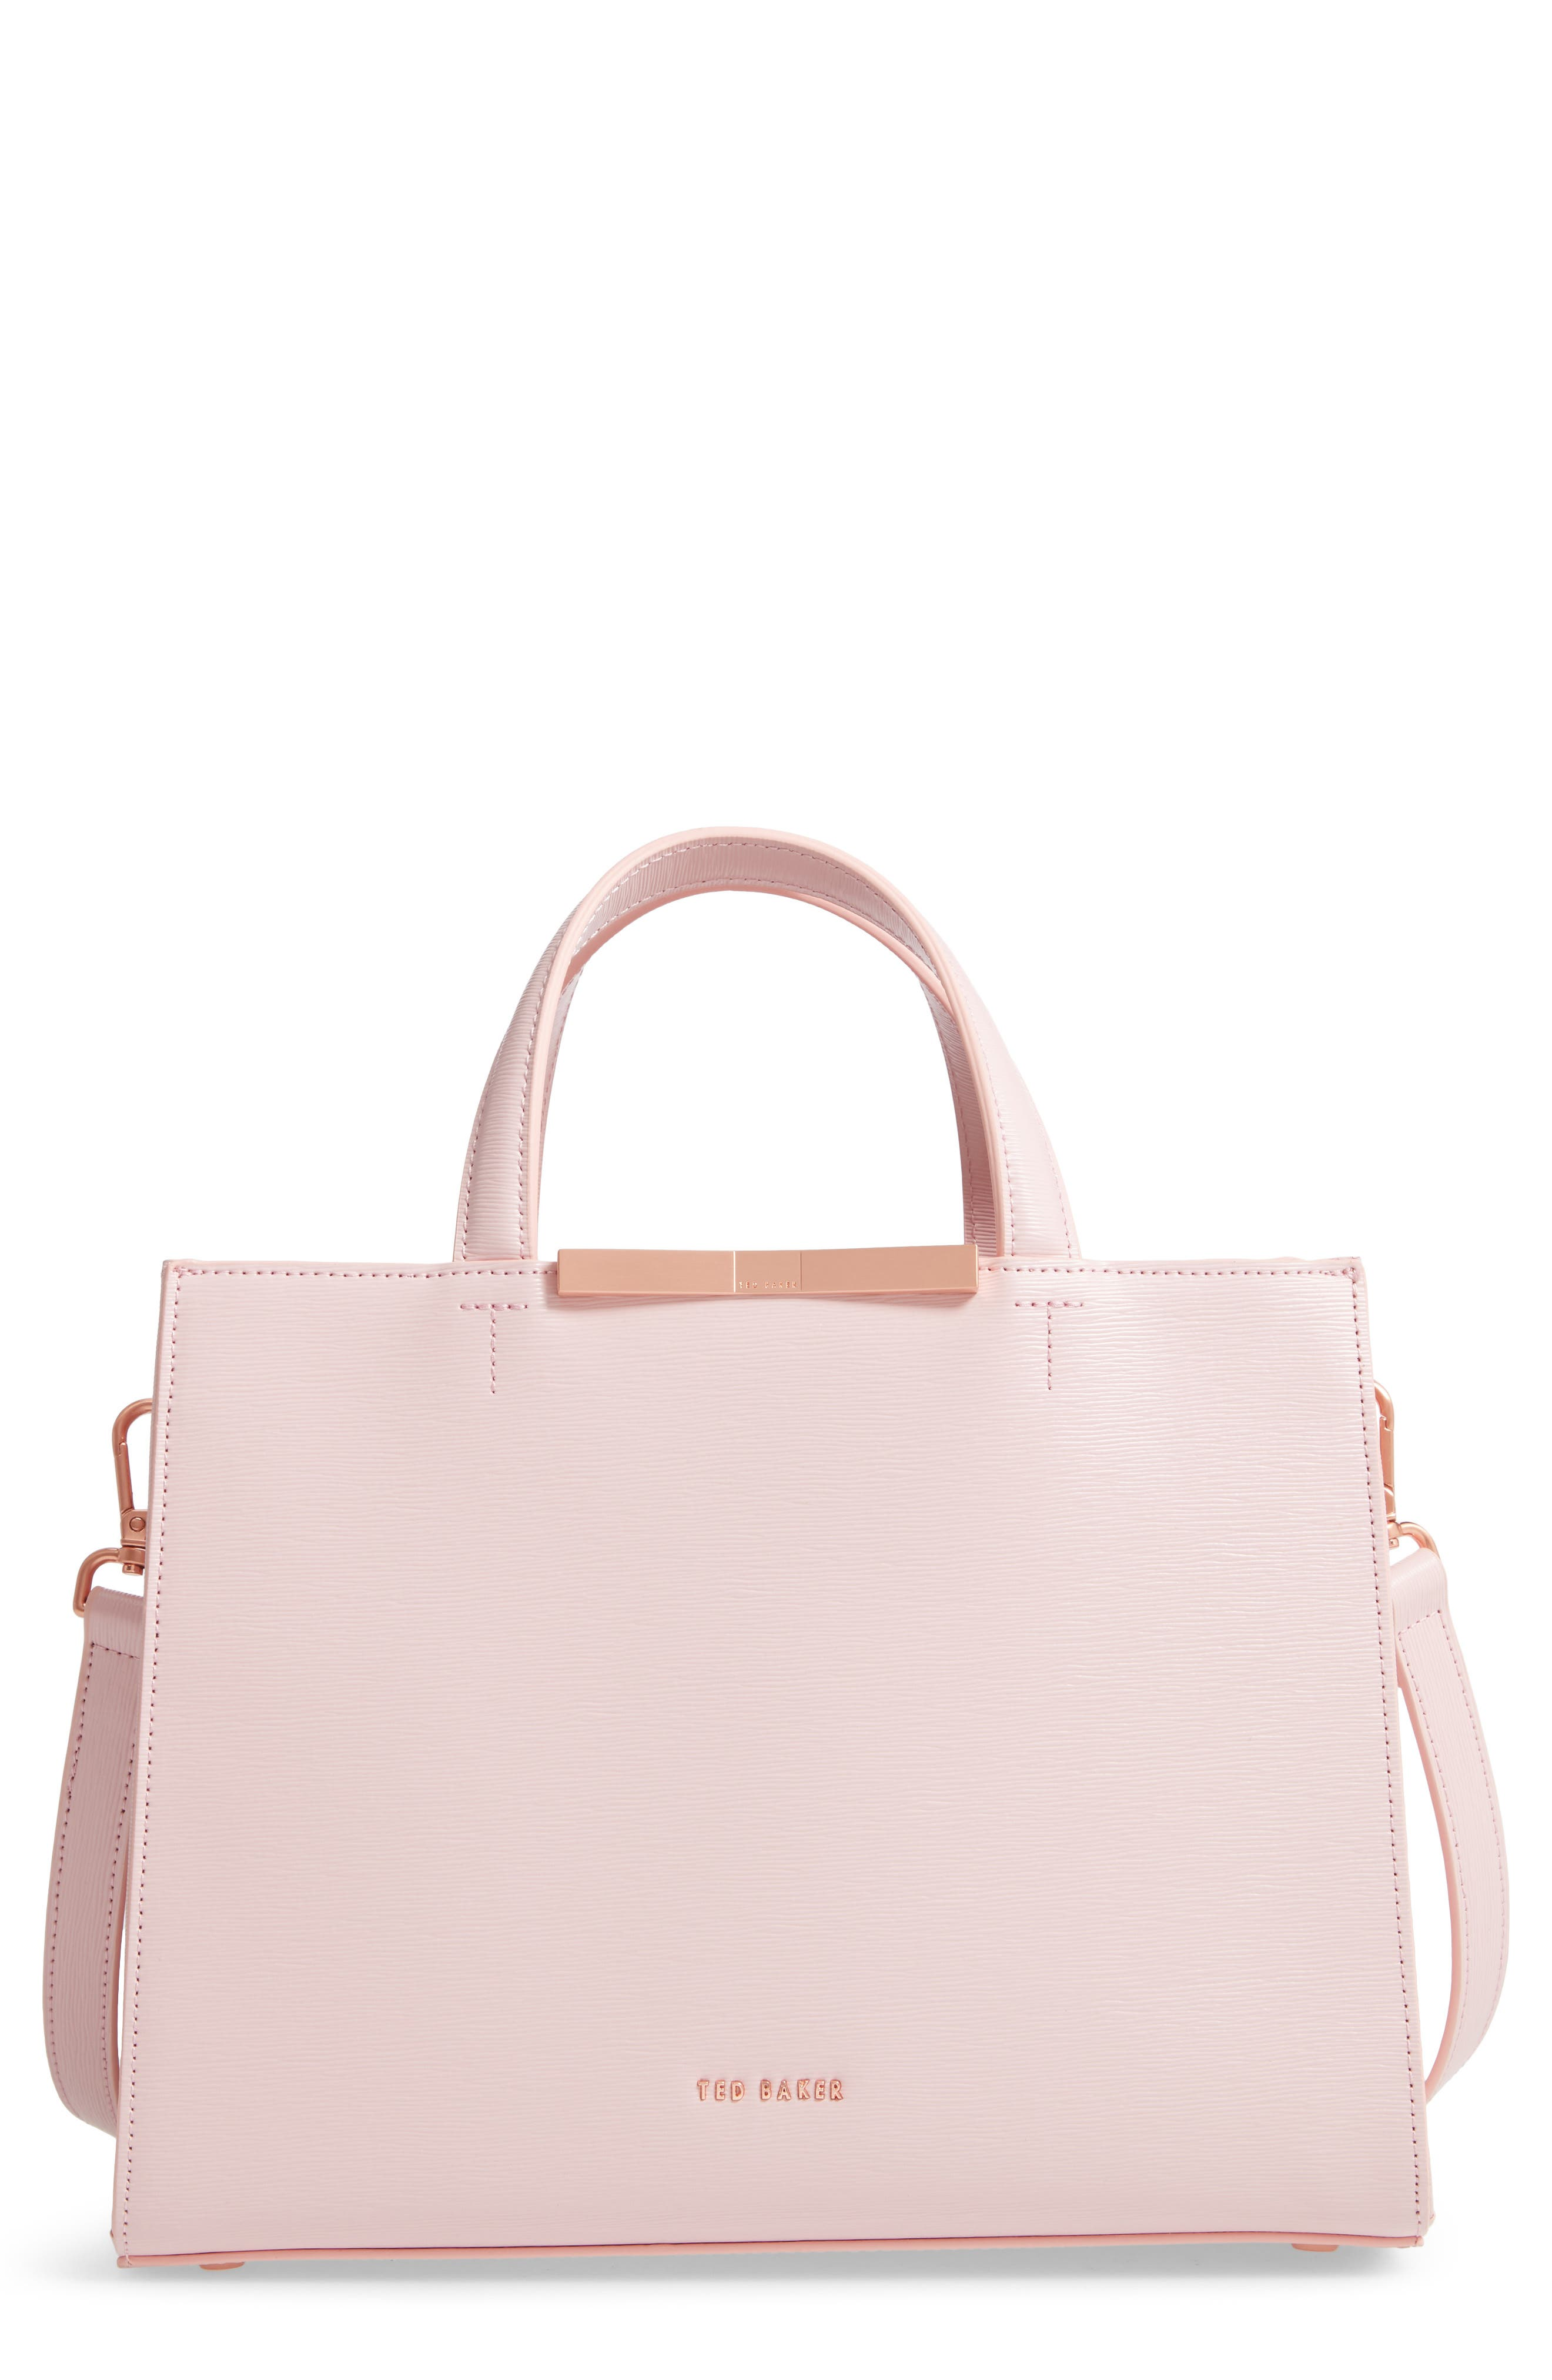 TED BAKER LONDON,                             Jaanet Leather Satchel,                             Main thumbnail 1, color,                             LIGHT PINK